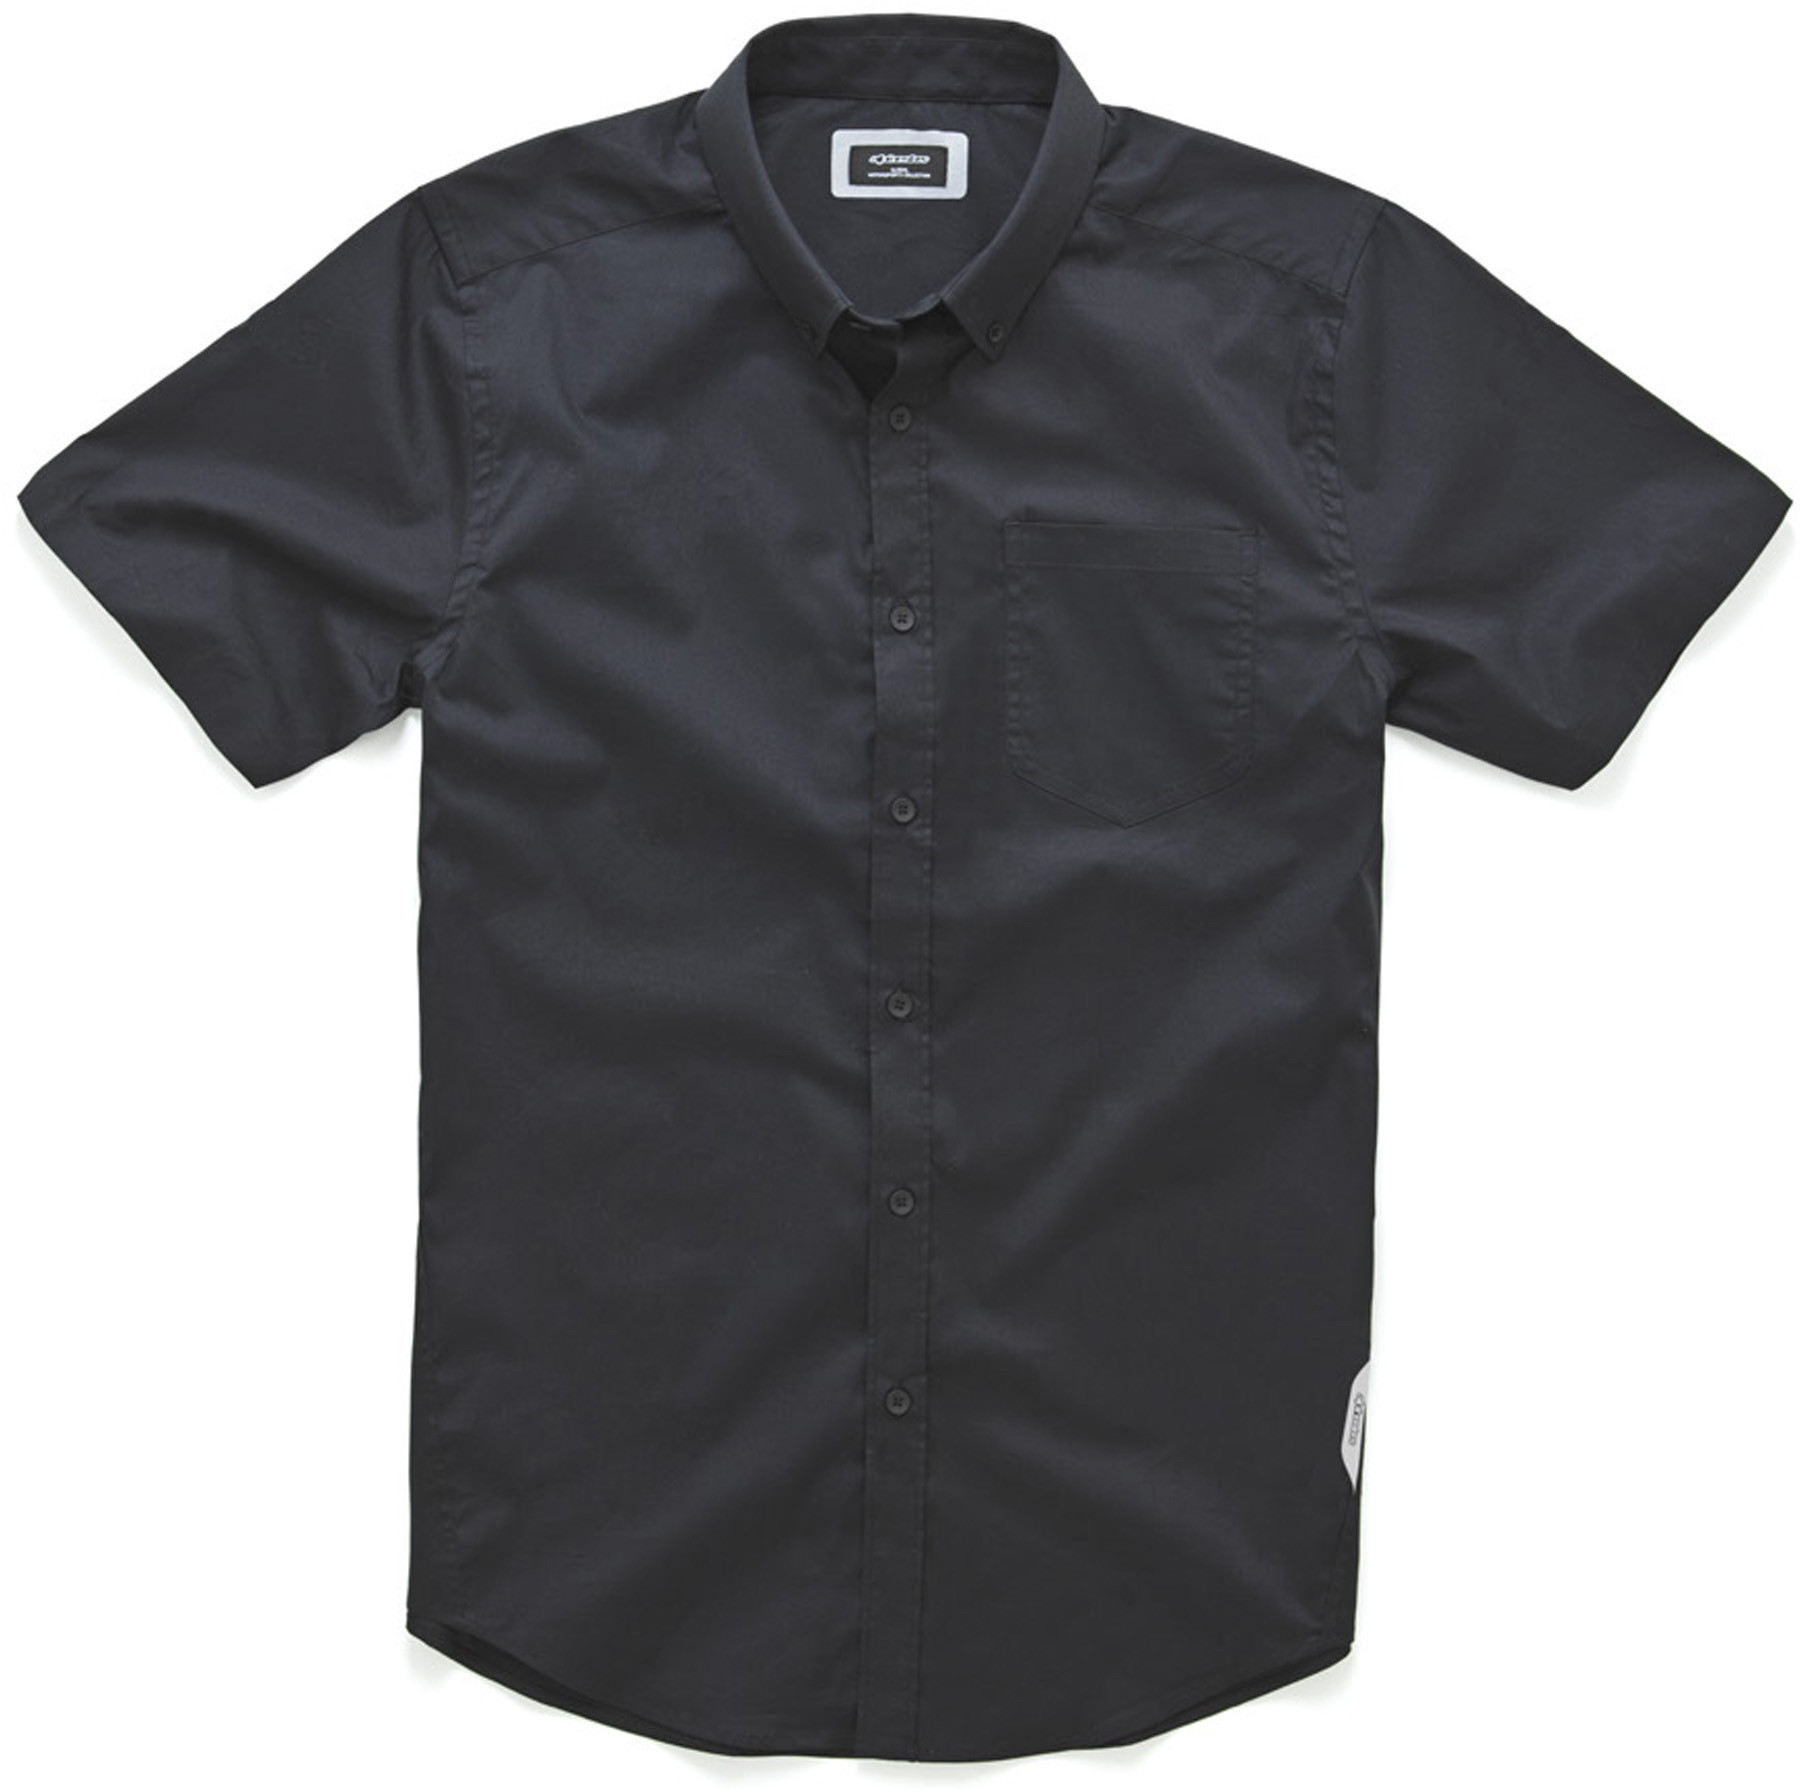 Aero Ss Shirt 2Xl (Black)